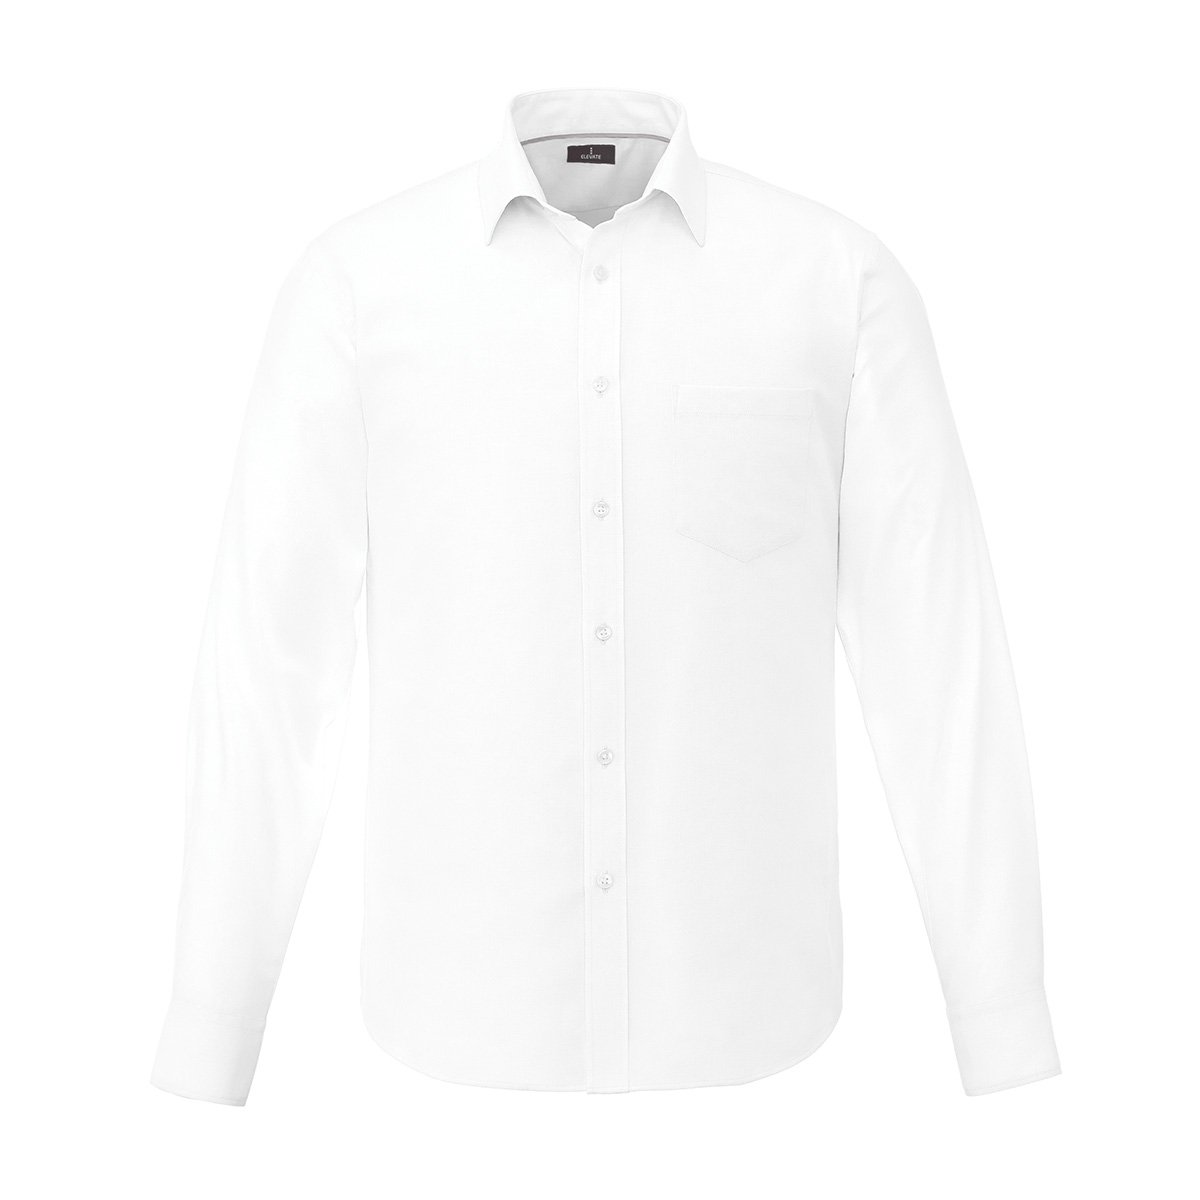 Pierce Long Sleeve Men's Shirt, #17656 - Embroidered